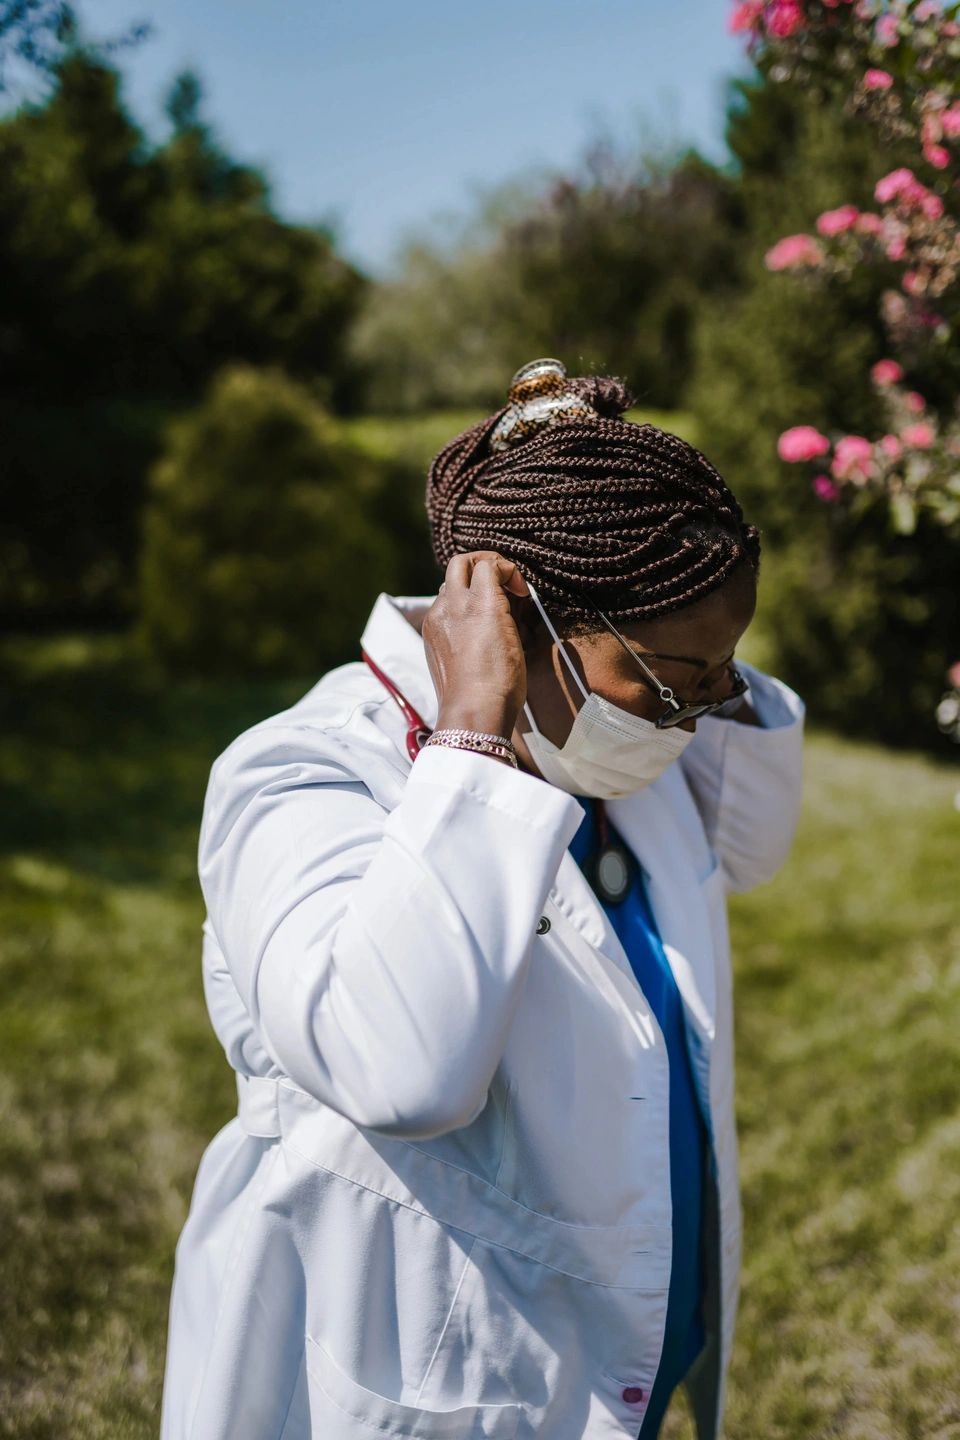 doctor in white coat putting on a facemask